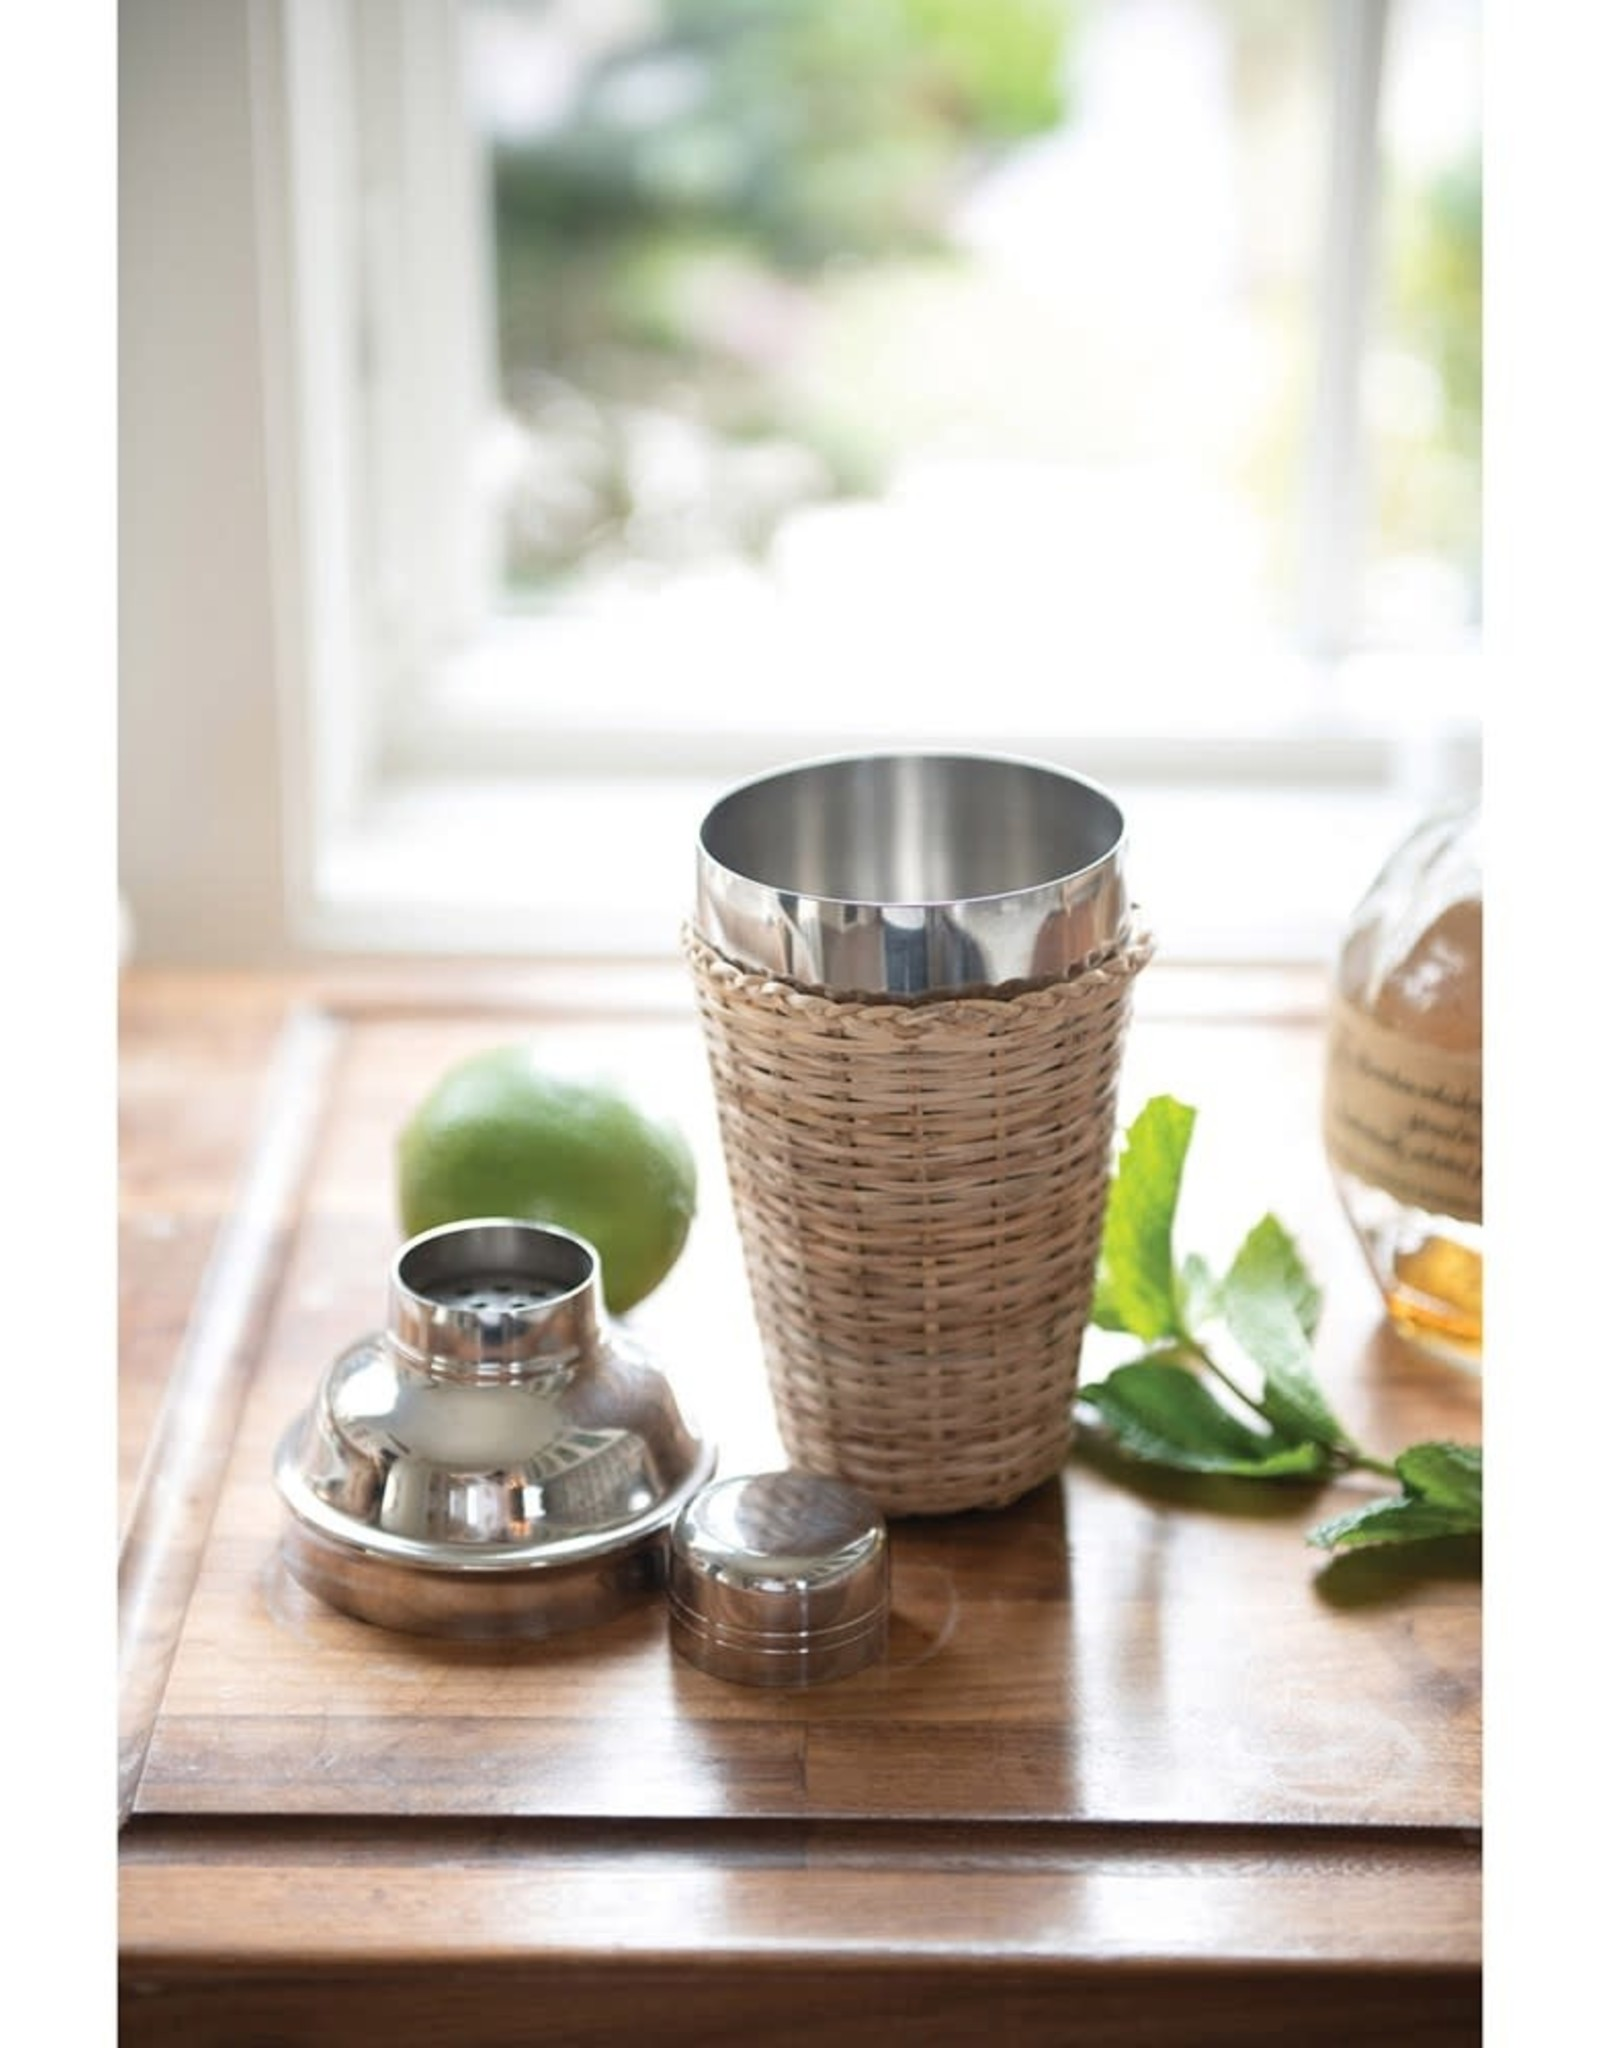 Stainless Steel Cocktail Shaker with Woven Rattan Sleeve